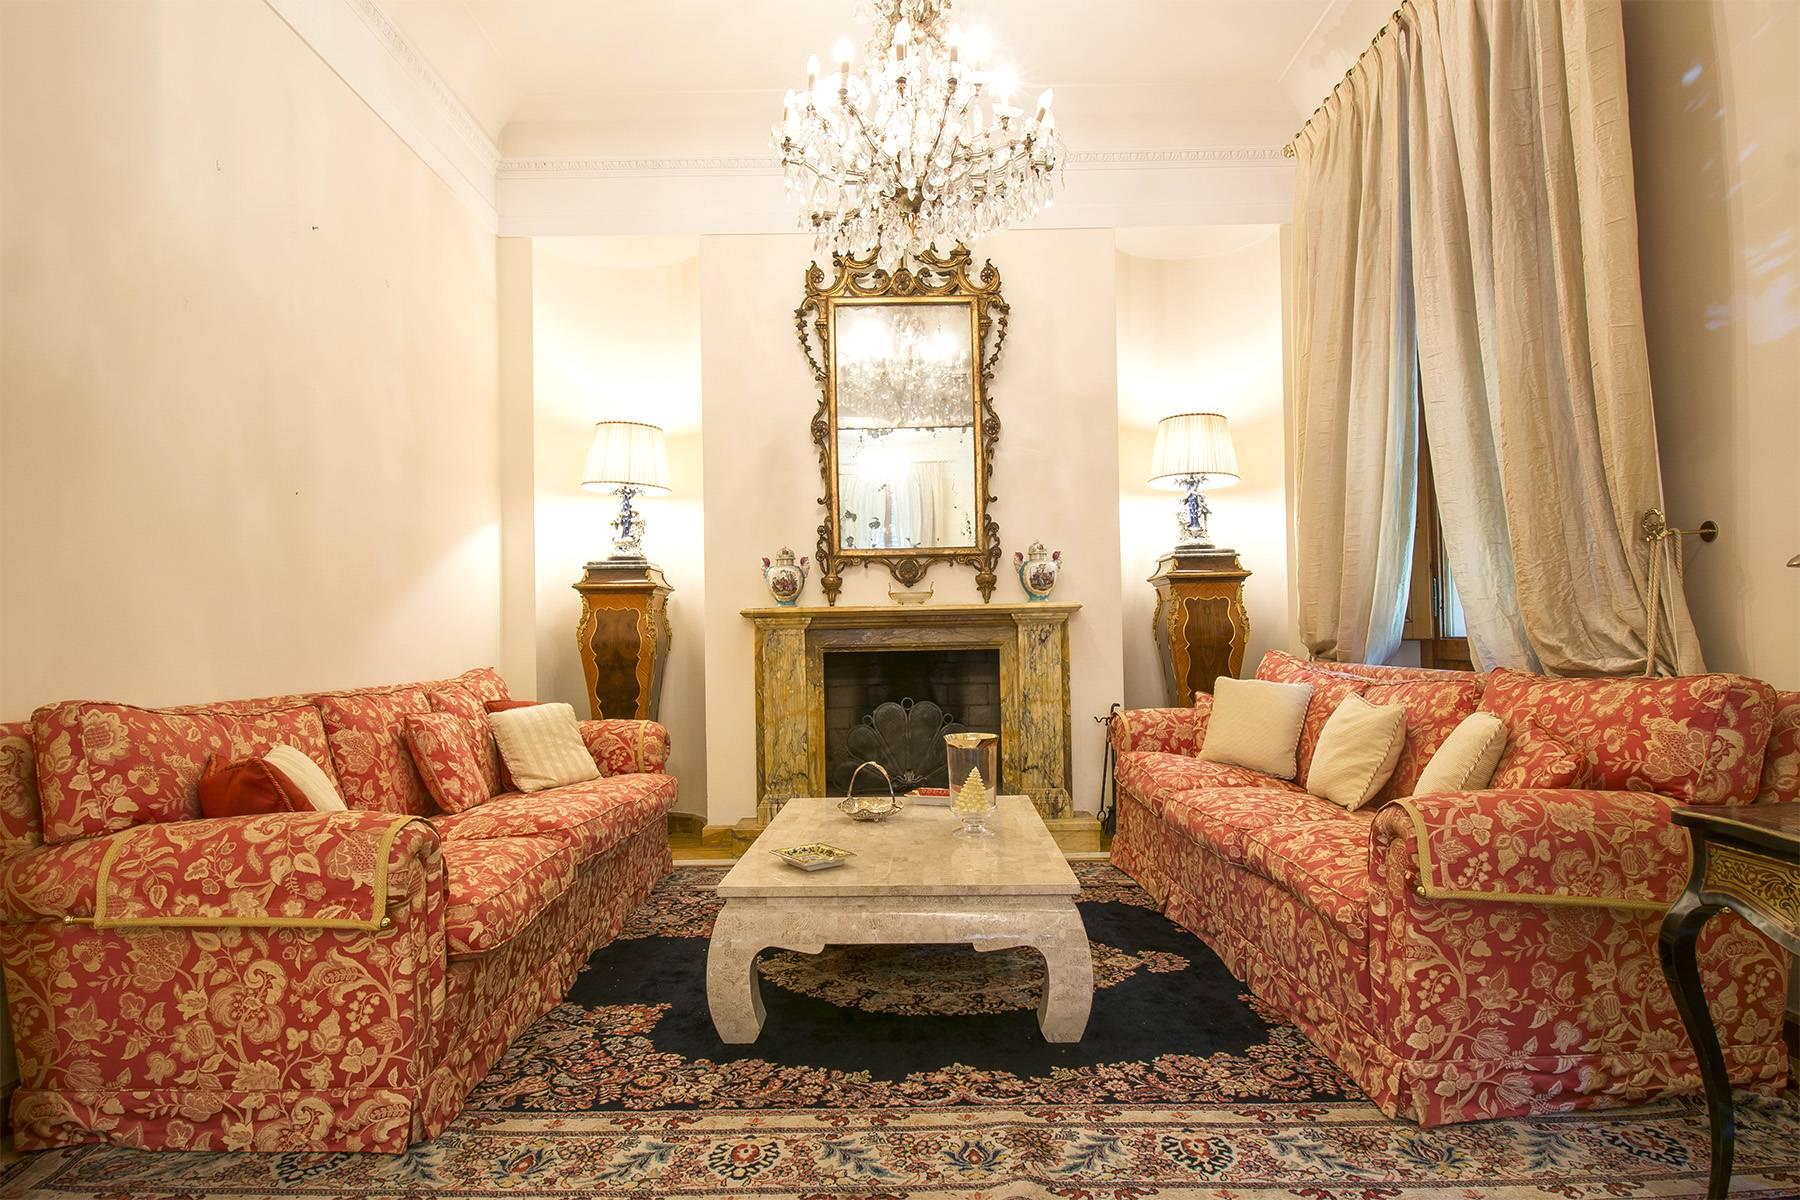 Luxury Art Nouveau Villa in the heart of Montecatini Terme - 4